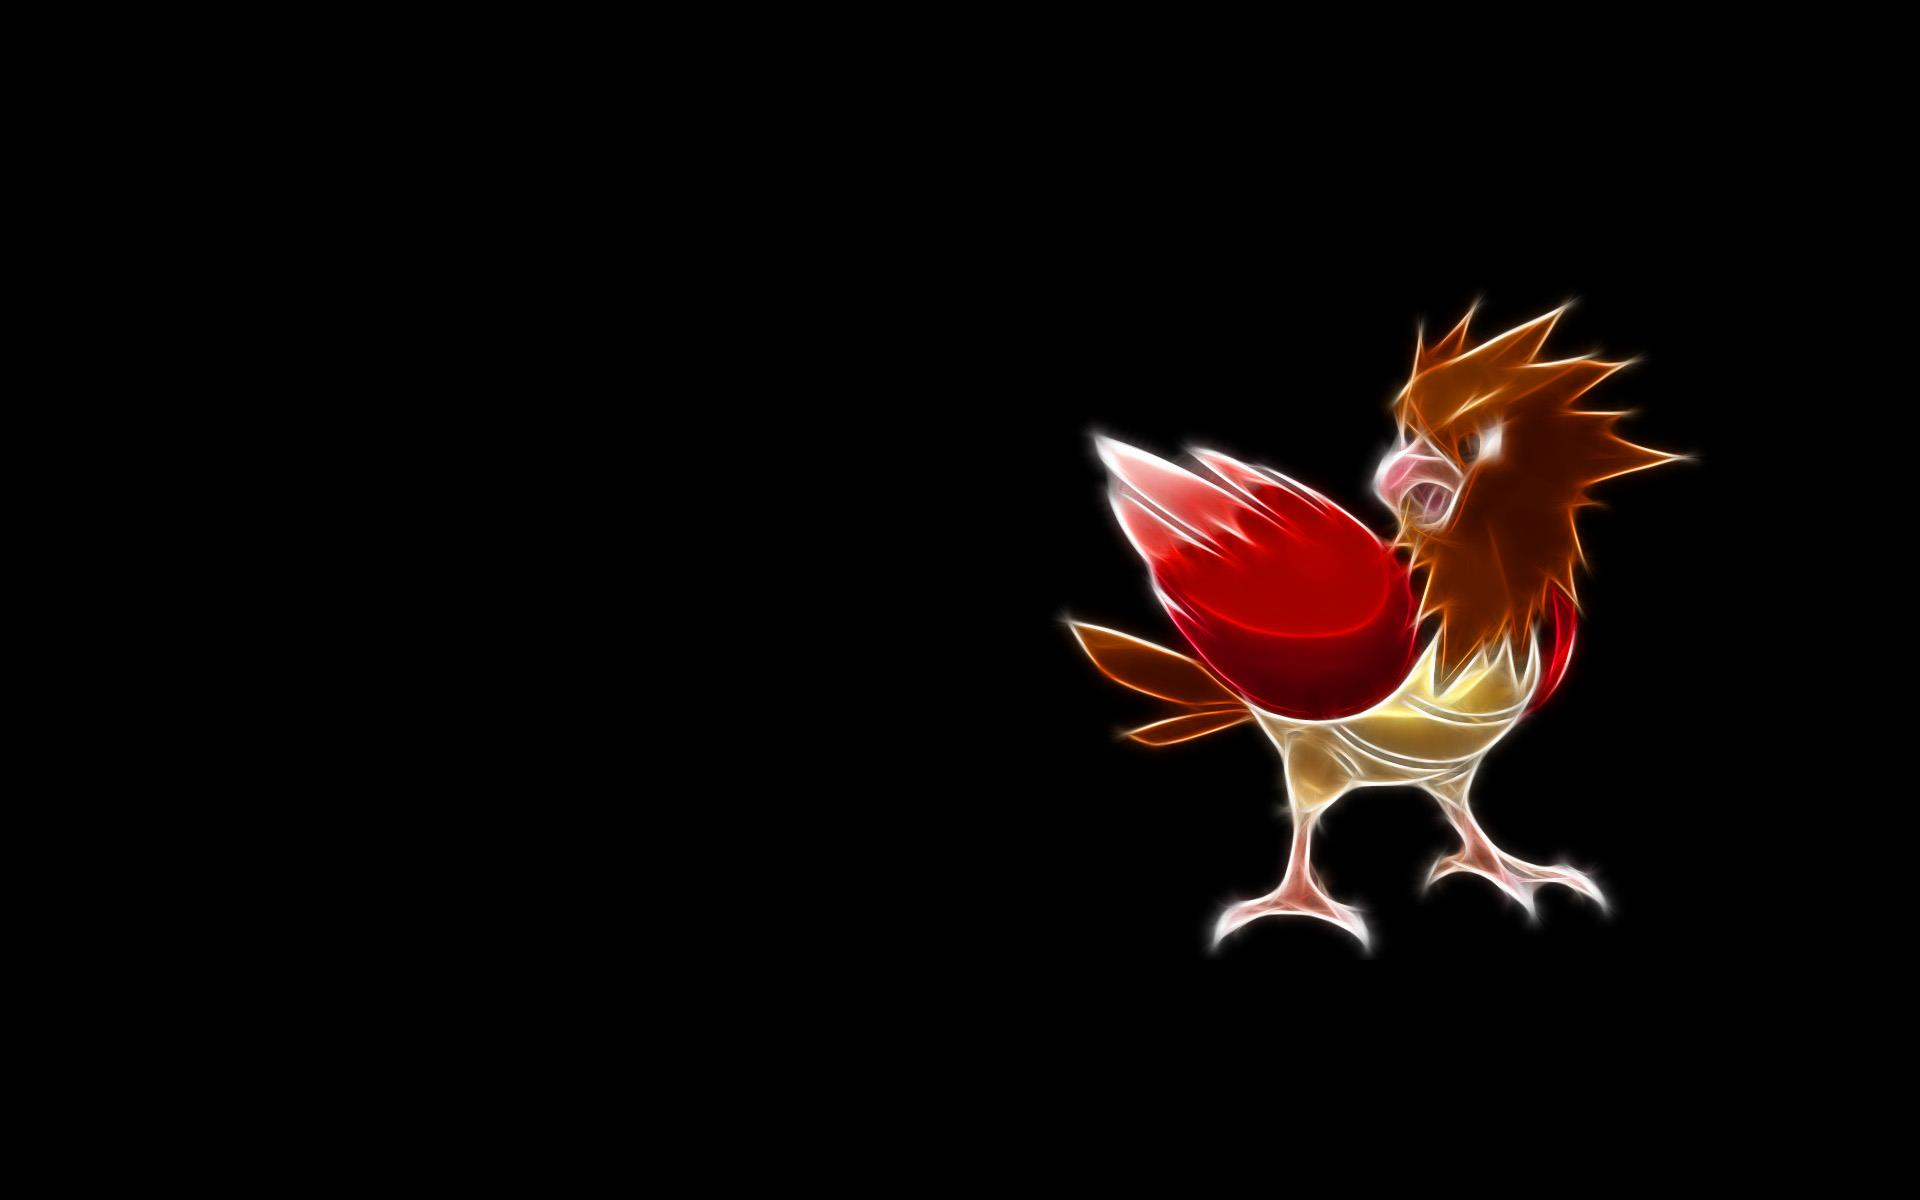 spearow-pokemon-wallpaper-free-download